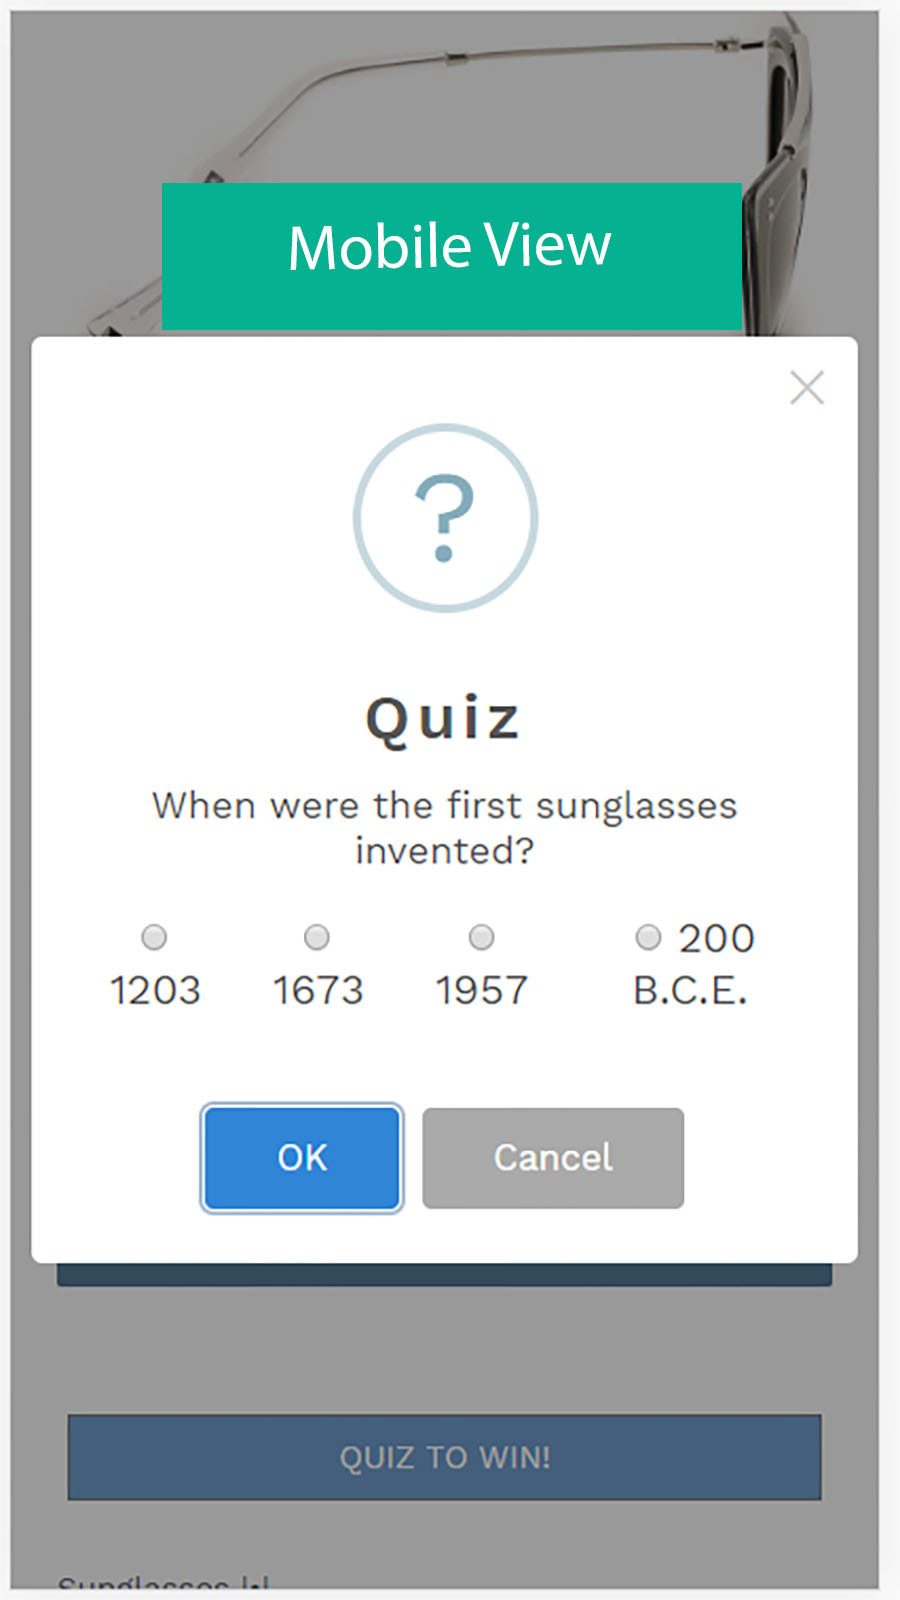 Engage Your Visitors With Customized Quizzes